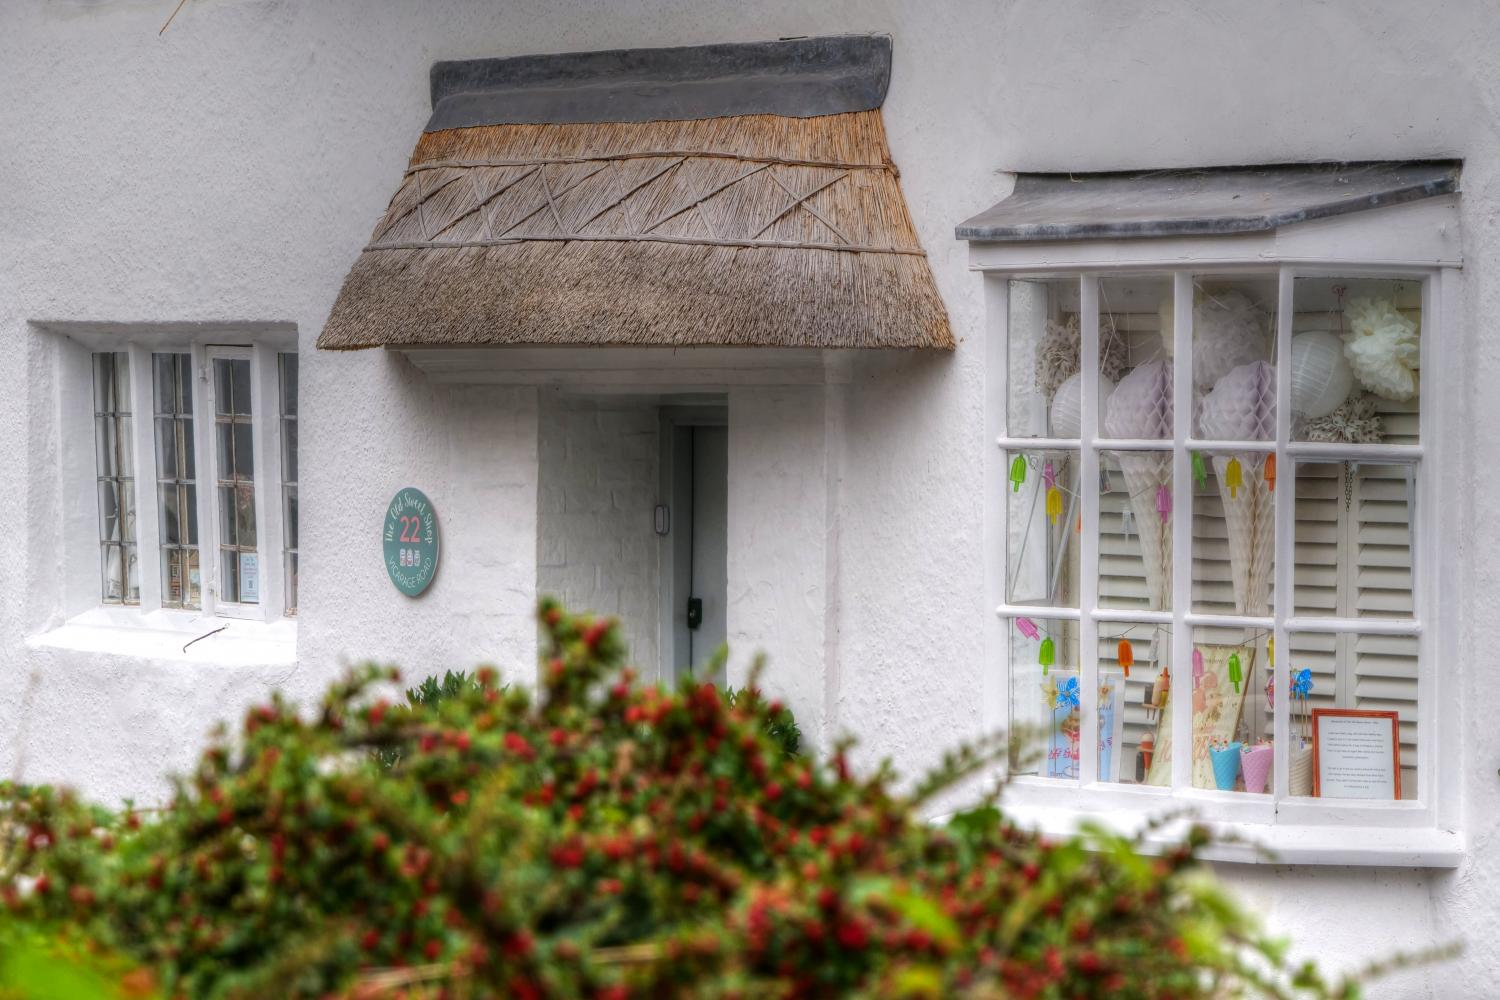 A chocolate box cottages